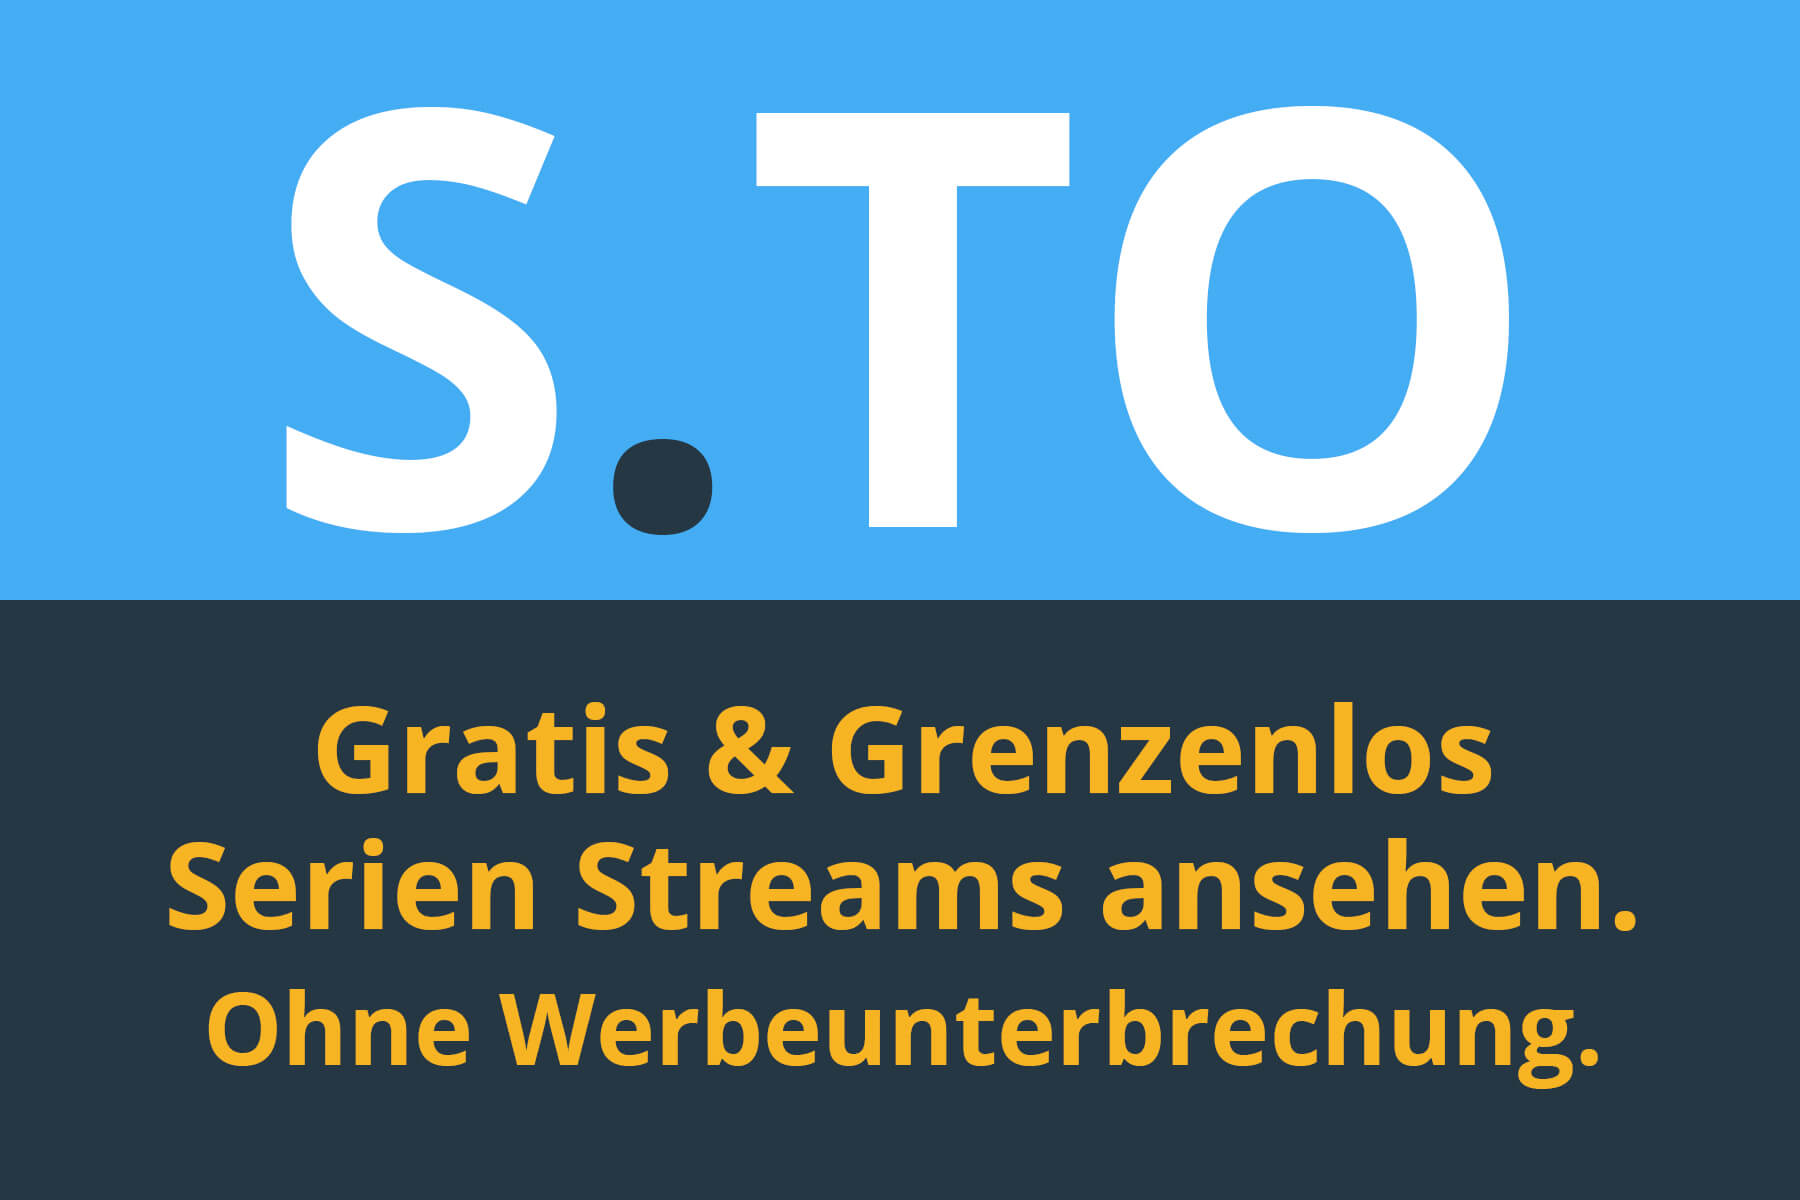 Home | ❤ S.to - TV-Serien Streams gratis online anschauen!